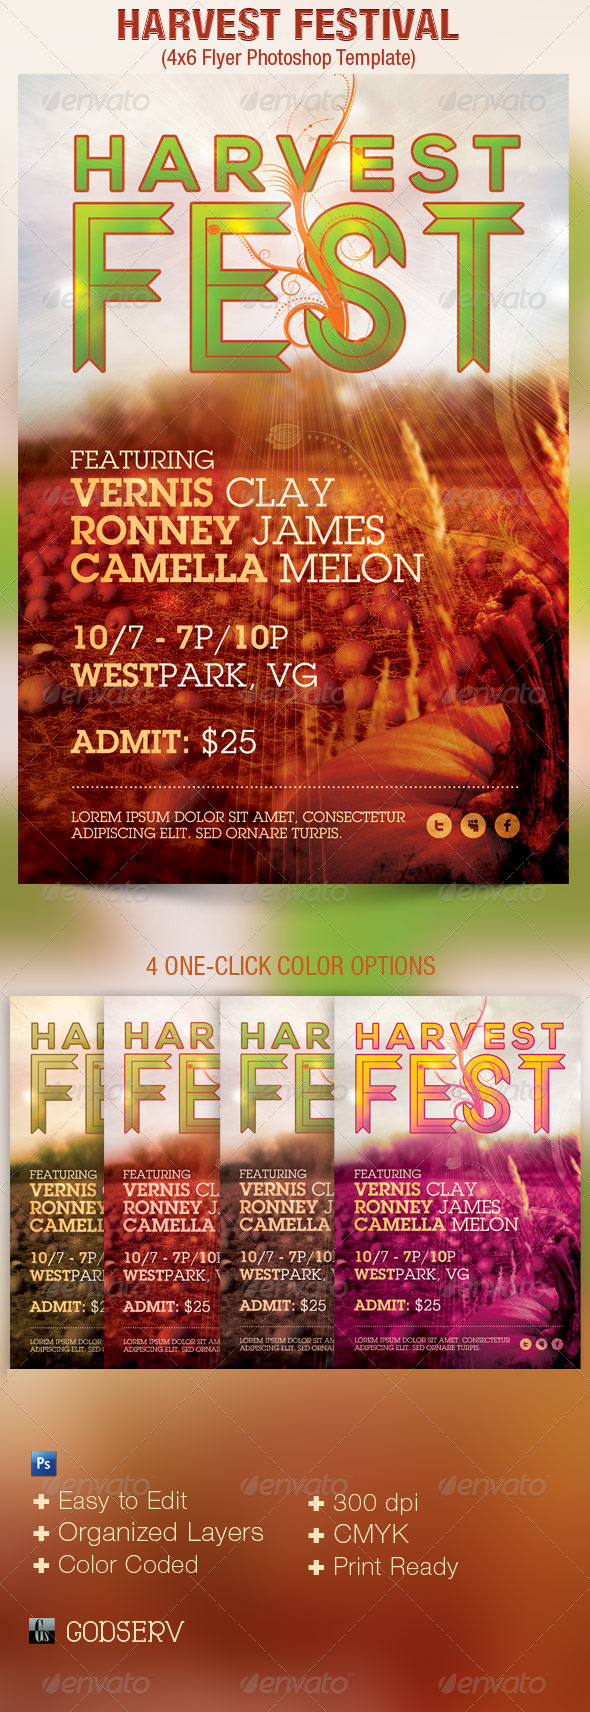 Harvest Festival Church Flyer Template - Church Flyers